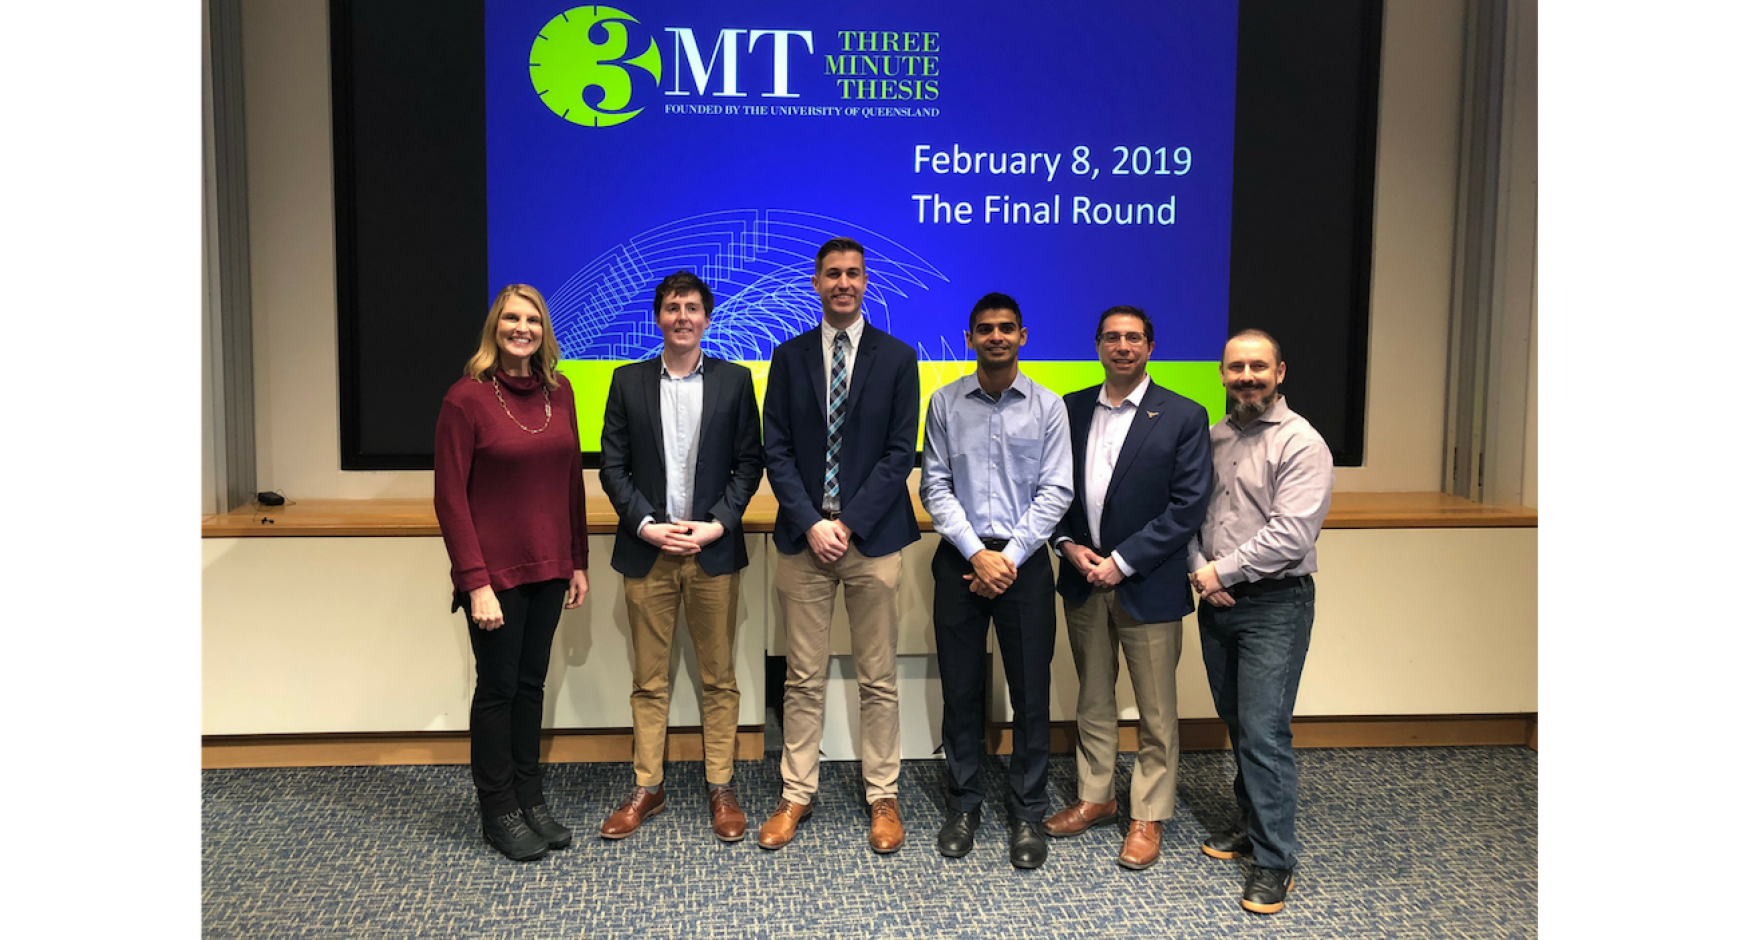 Chemical Engineering Ph D Student Wins Three Minute Thesis Competition Graduate School The University Of Texas At Austin